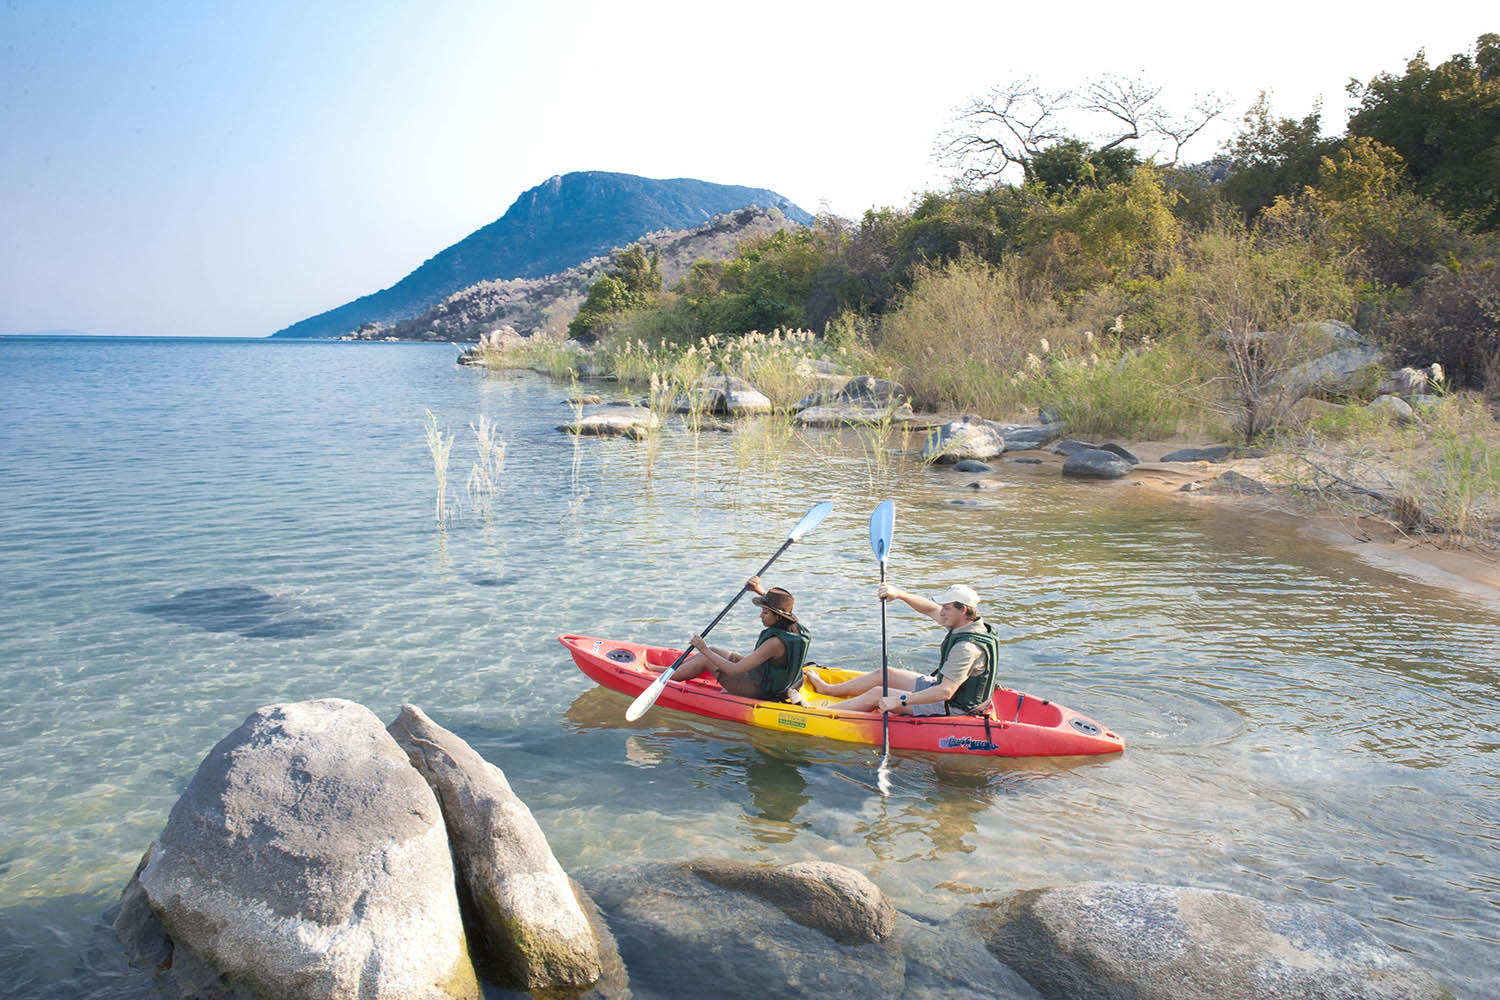 lake malawi national park malawi-national-parks-reserves-malawian-style-malawi-adventures-experiences-specialist-tour-operator-kayaking-pumulani